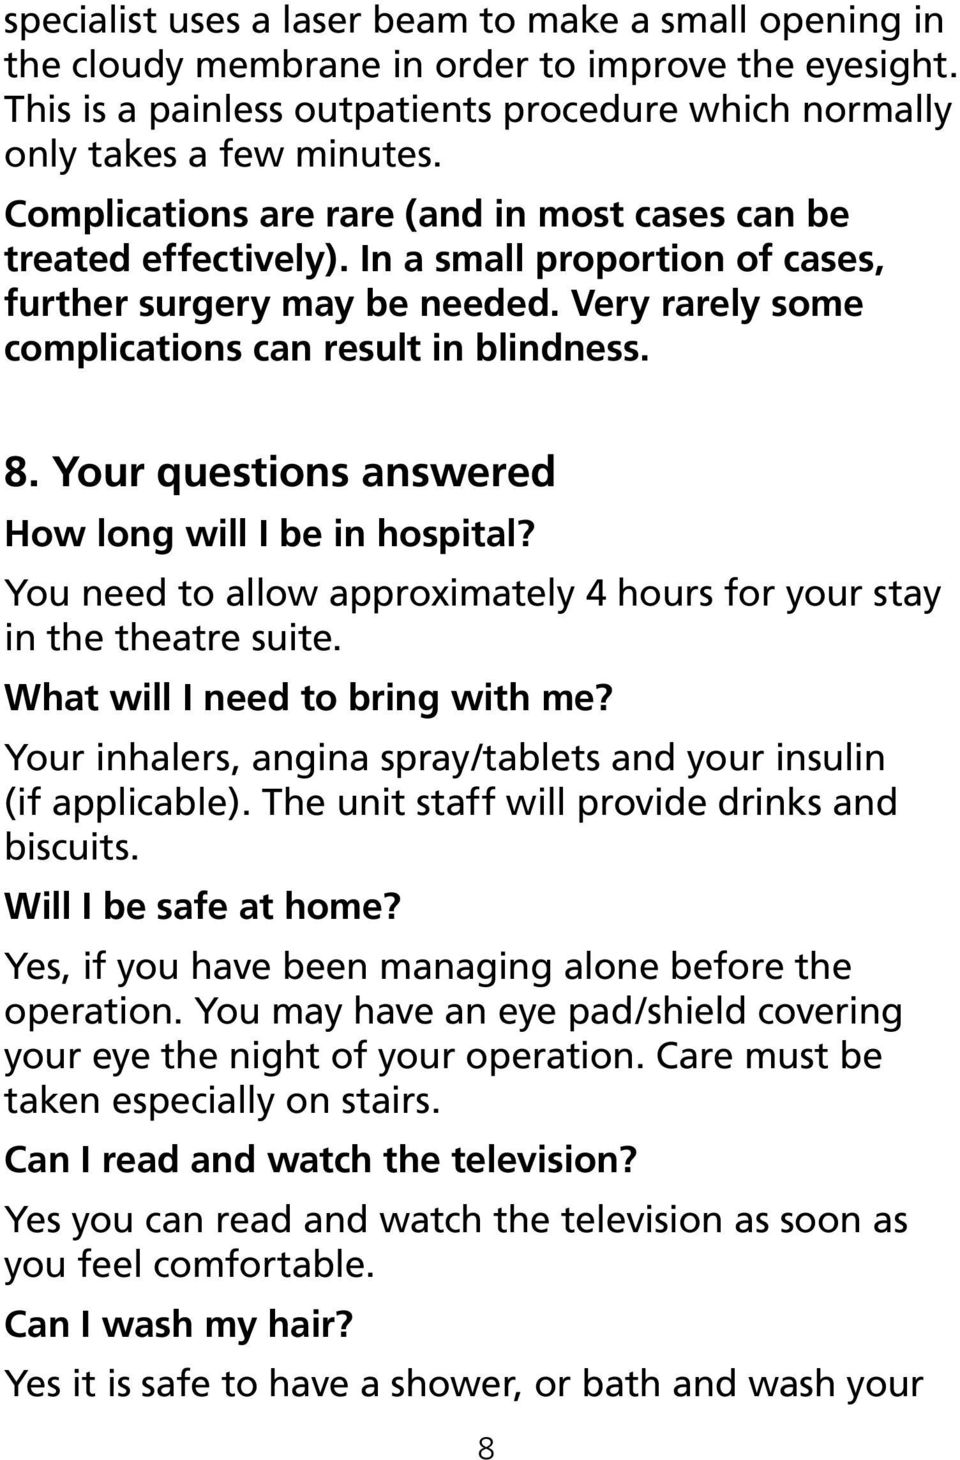 Your questions answered How long will I be in hospital? You need to allow approximately 4 hours for your stay in the theatre suite. What will I need to bring with me?